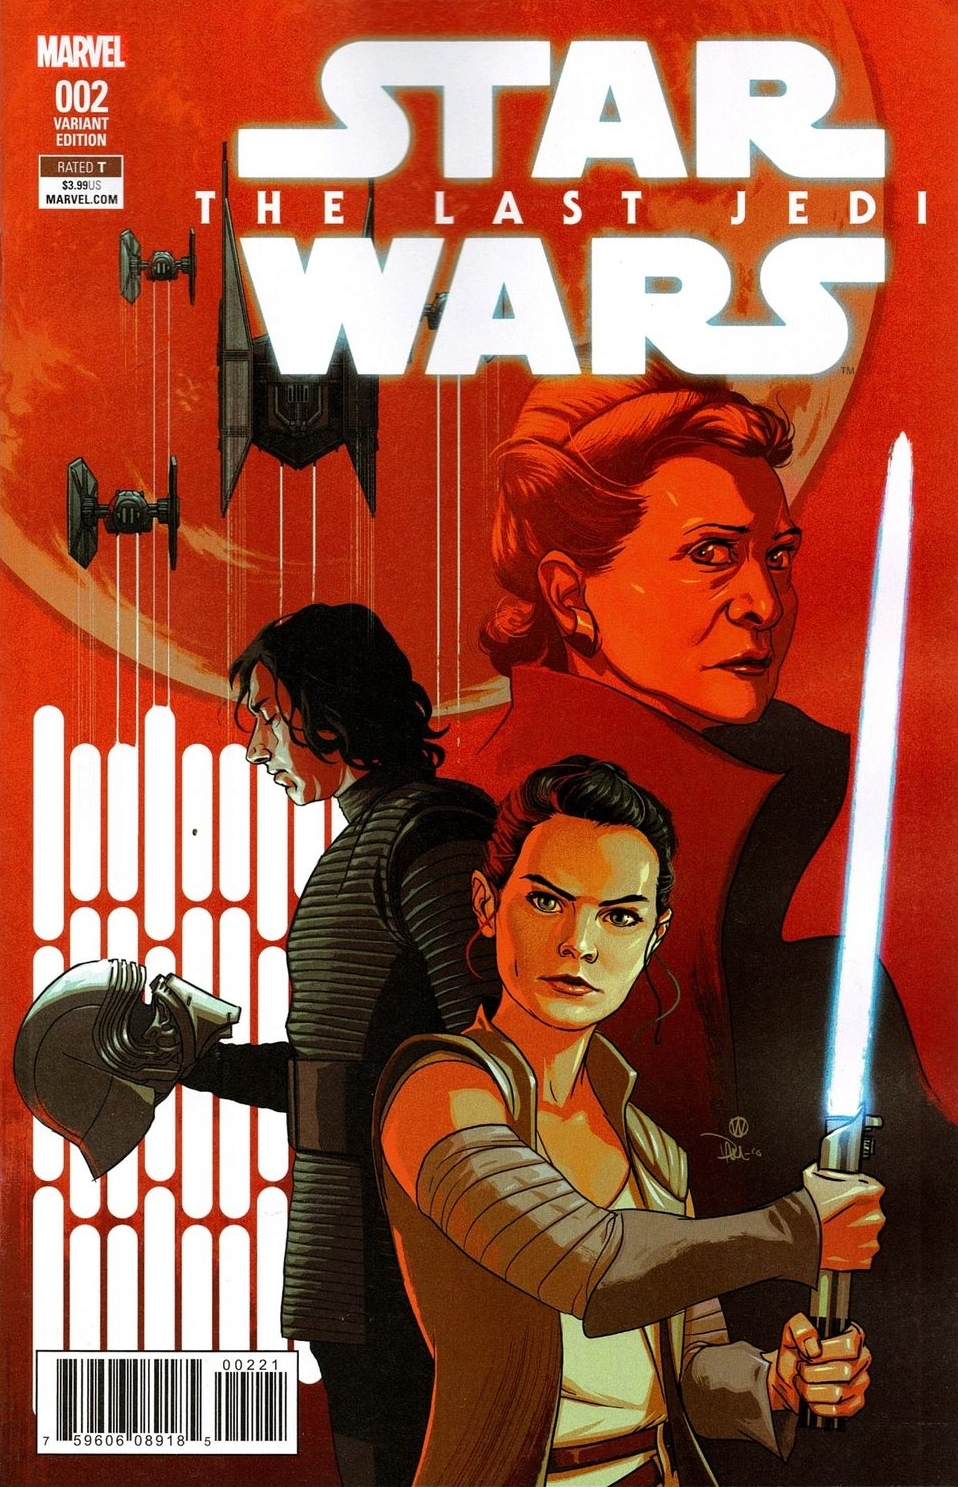 Star Wars: The Last Jedi #2 (Michael Walsh Variant Cover) (23.05.2018)